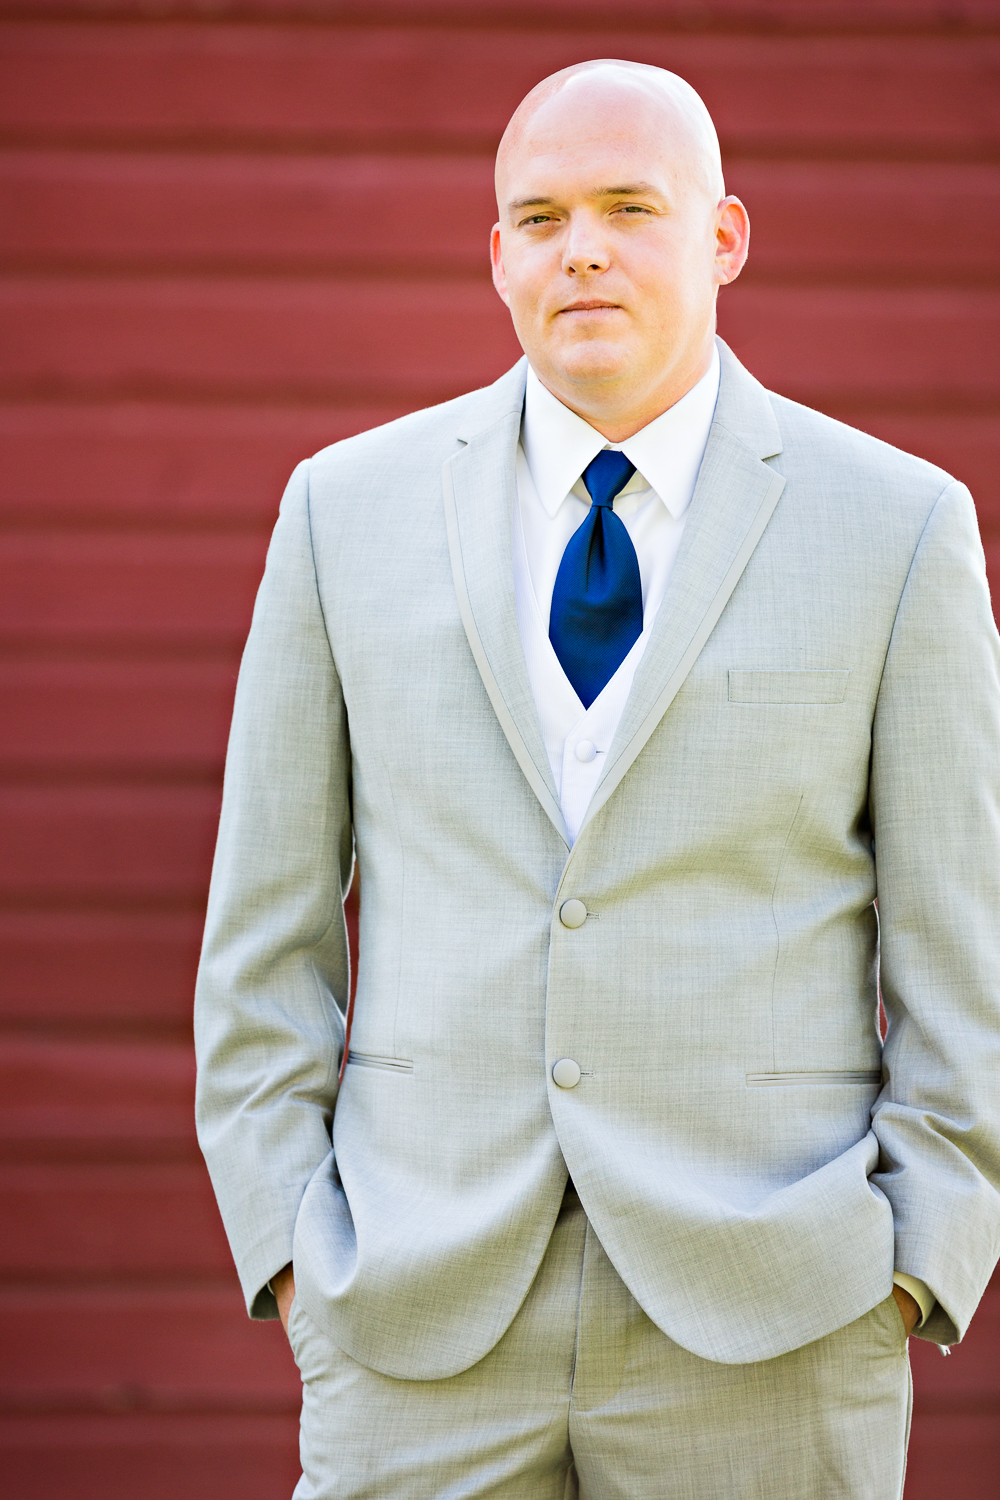 bozeman-montana-wedding-roys-barn-groom-portrait.jpg